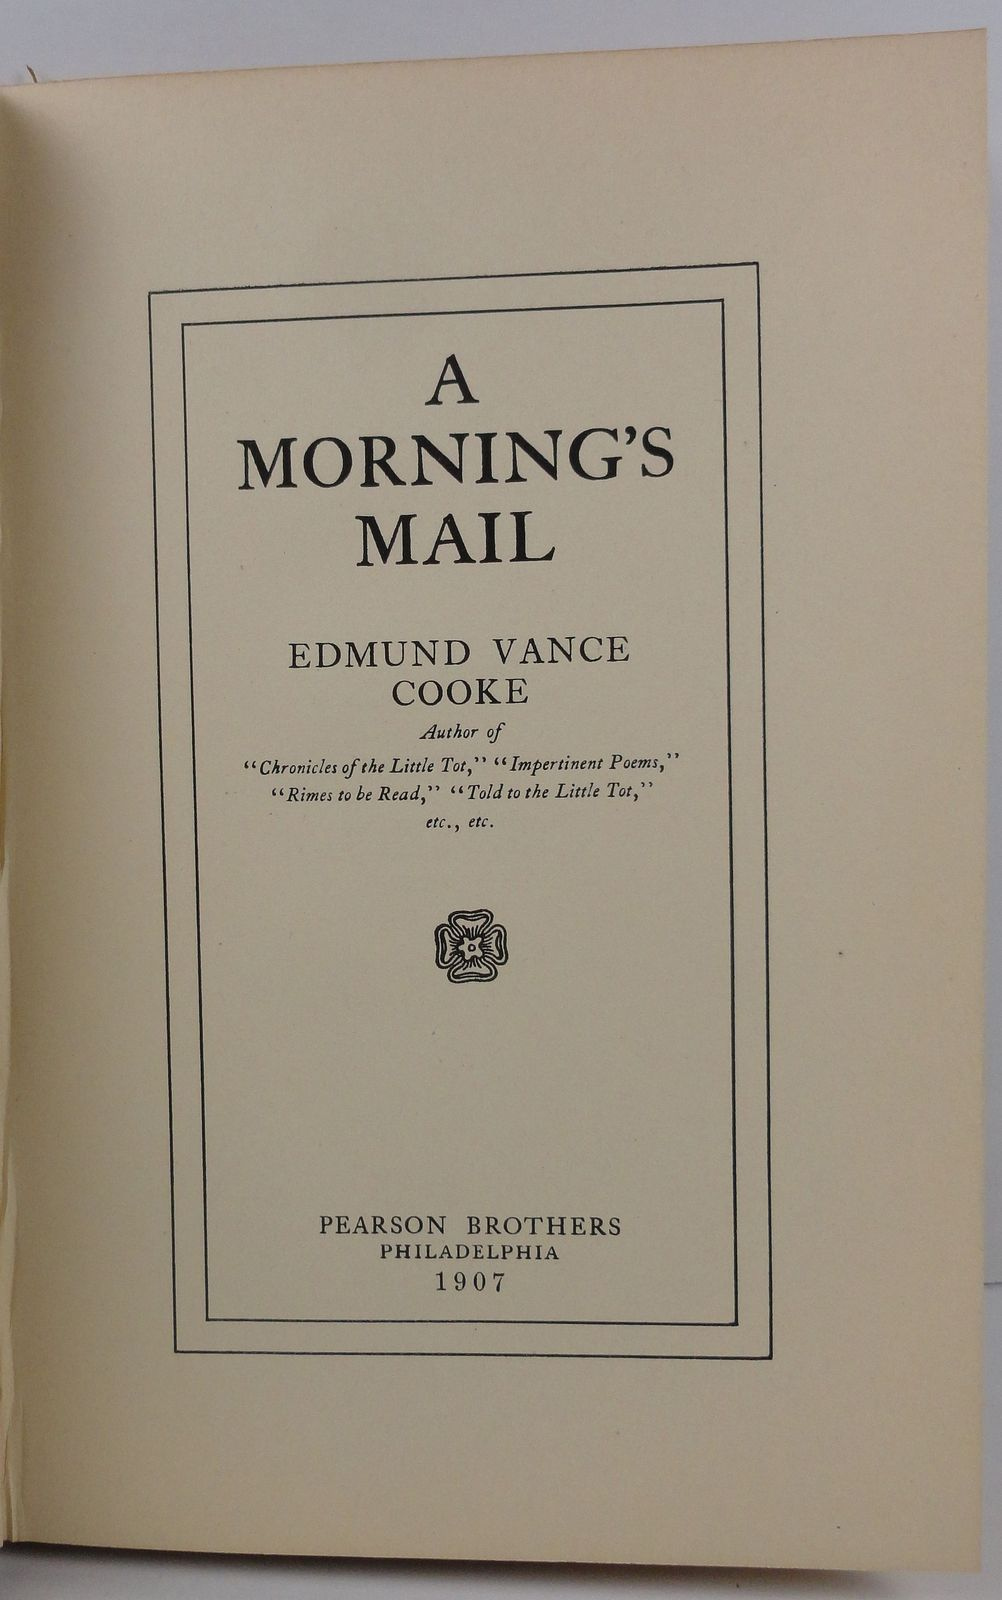 A Morning's Mail by Edmund Vance Cooke 1907 Pearson Brothers